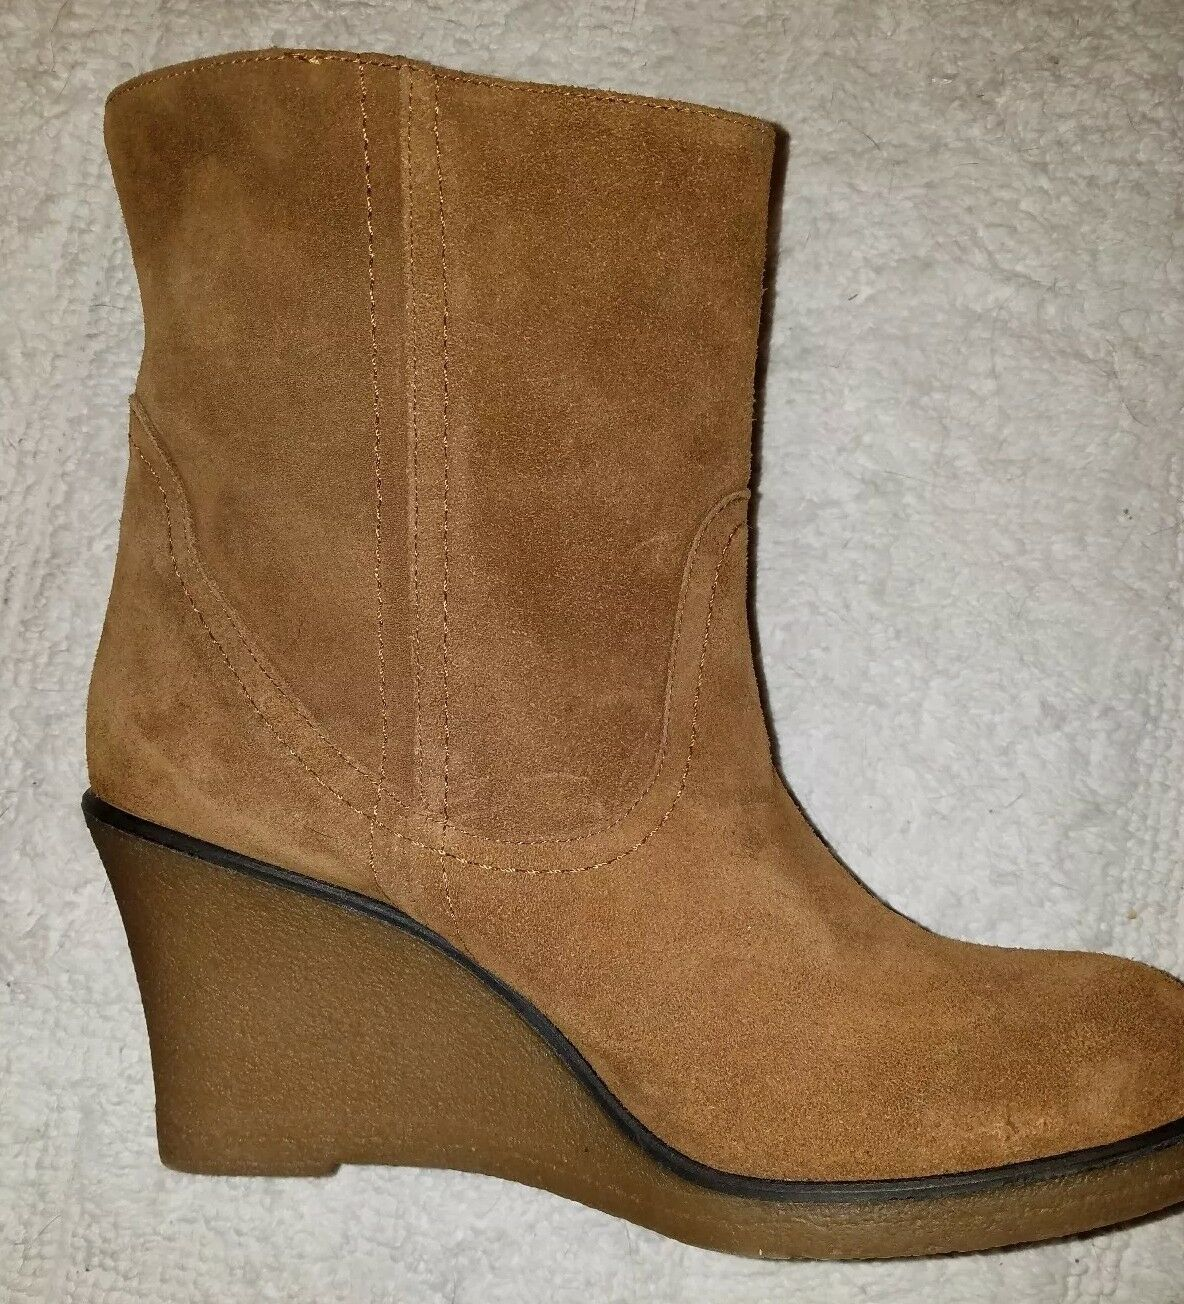 Charles David NEW Braun Fringed Suede wedge Booties ankle booties NEW David 39 US 9 7aadc1